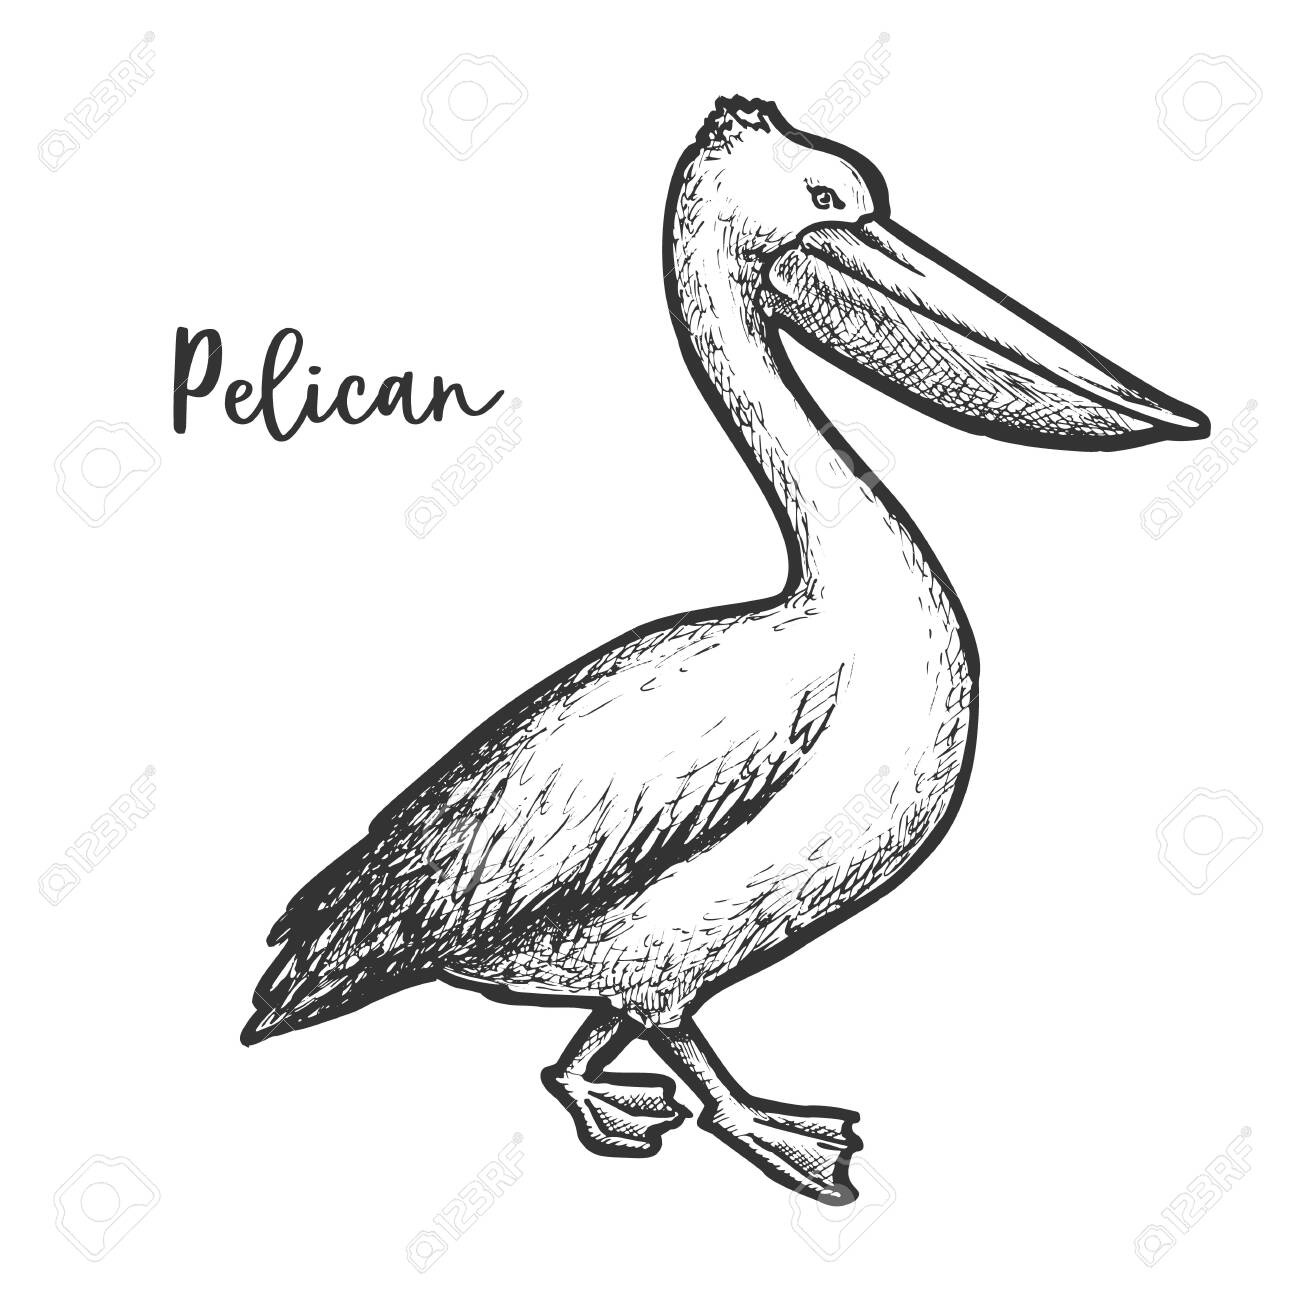 Pelican Etching Vector Illustration Sketch Of Bird Royalty Free Cliparts Vectors And Stock Illustration Image 147968365